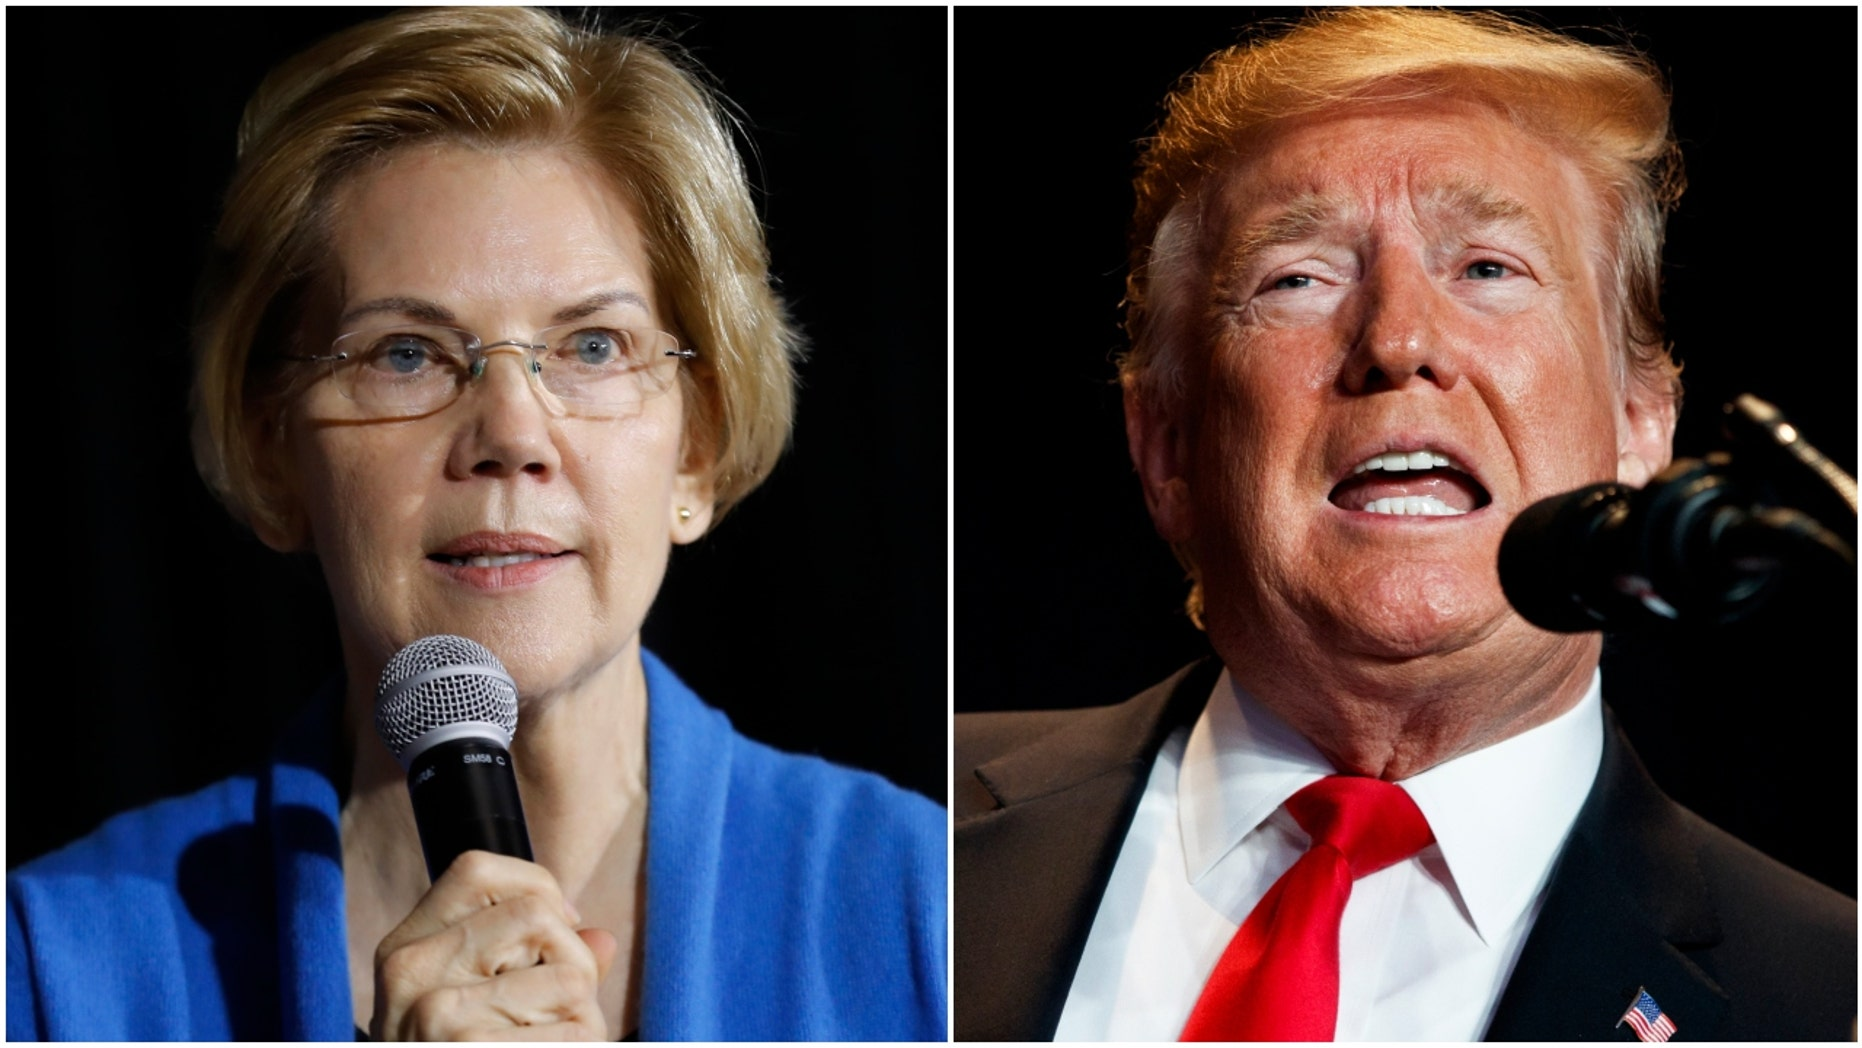 Sen. Elizabeth Warren and President Donald Trump (Photo: AP Photo/Charlie Neibergall and AP Photo/ Evan Vucci)